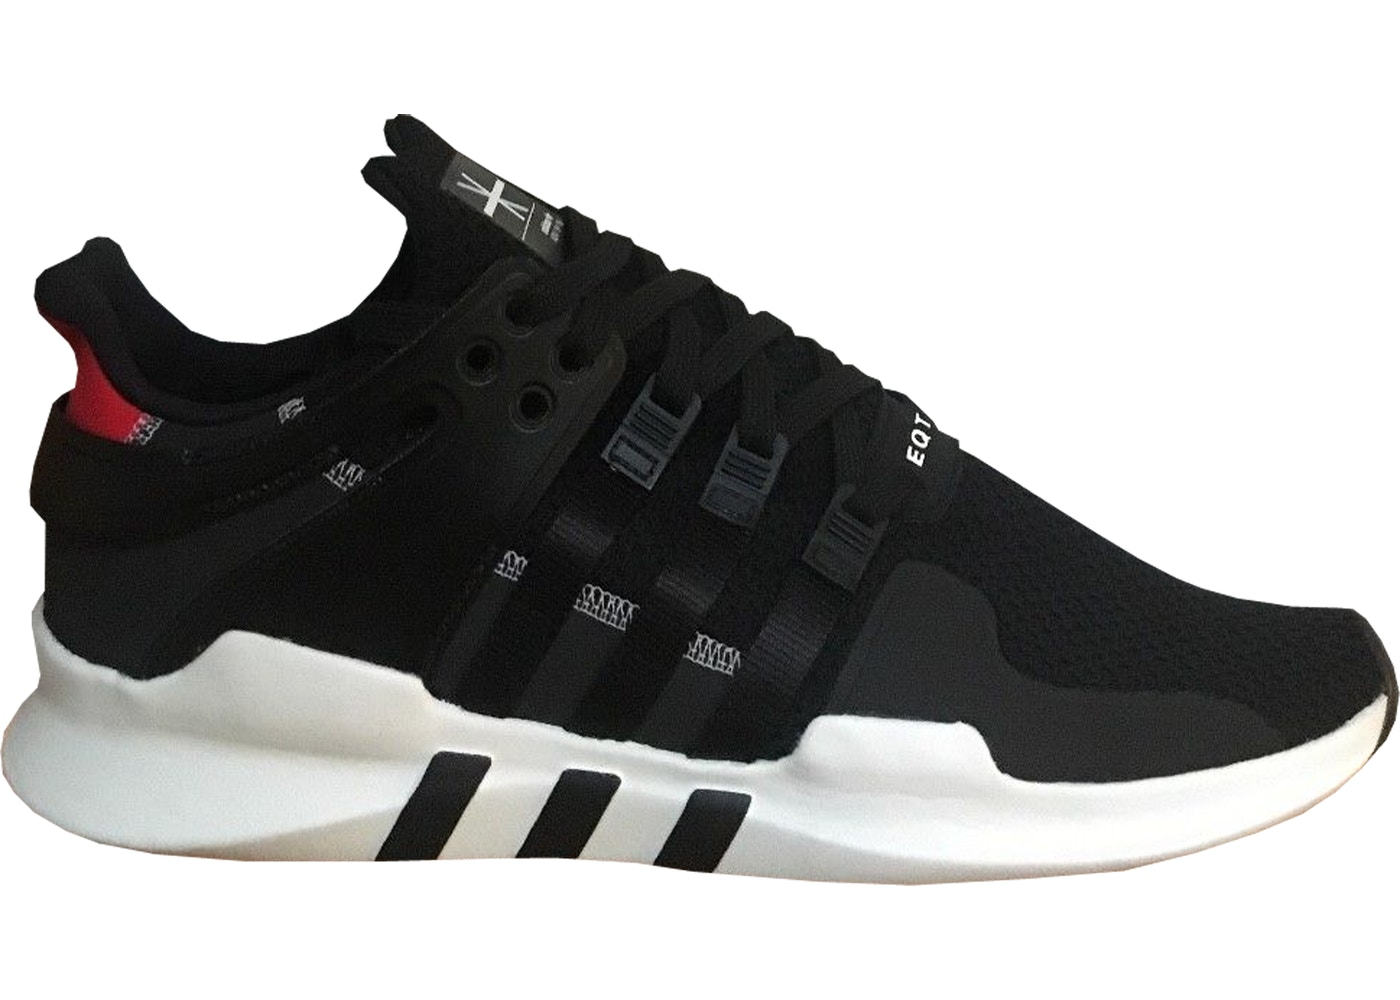 quality design 2d7a6 8aa3c ... adidas EQT Support ADV Wicker Park Chicago ...